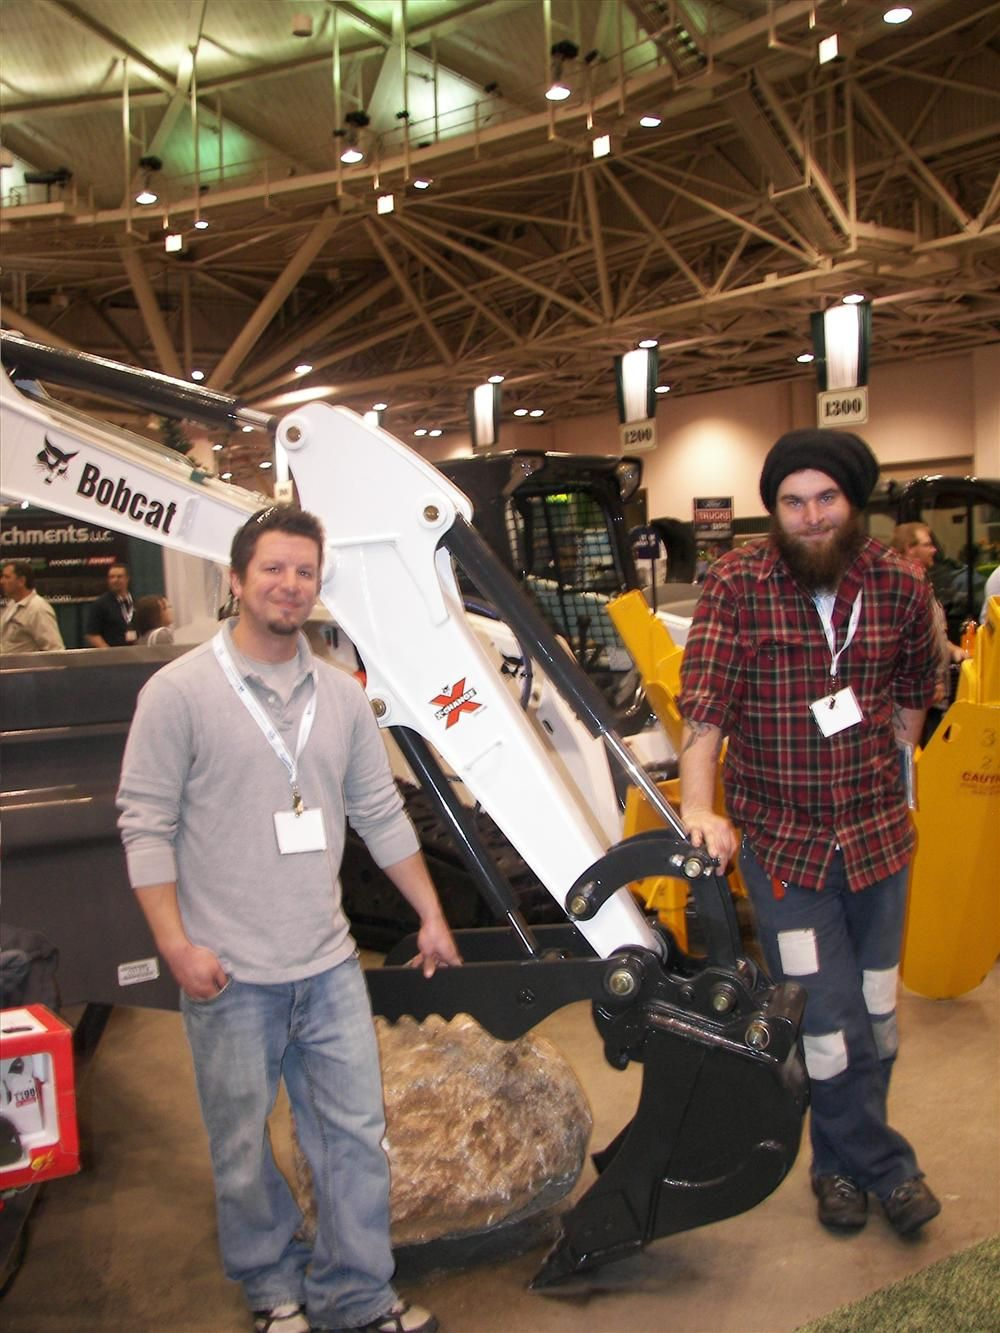 Isaak Smith (L) and Karl Poling, both of I. Smith Earthscapes, St. Paul, Minn., attempt to guess the weight of a boulder carried by this Bobcat E26 excavator. If they guess correctly, they win a toy Bobcat T190. Lano Equipment Inc. of Anoka, Minn., sponso